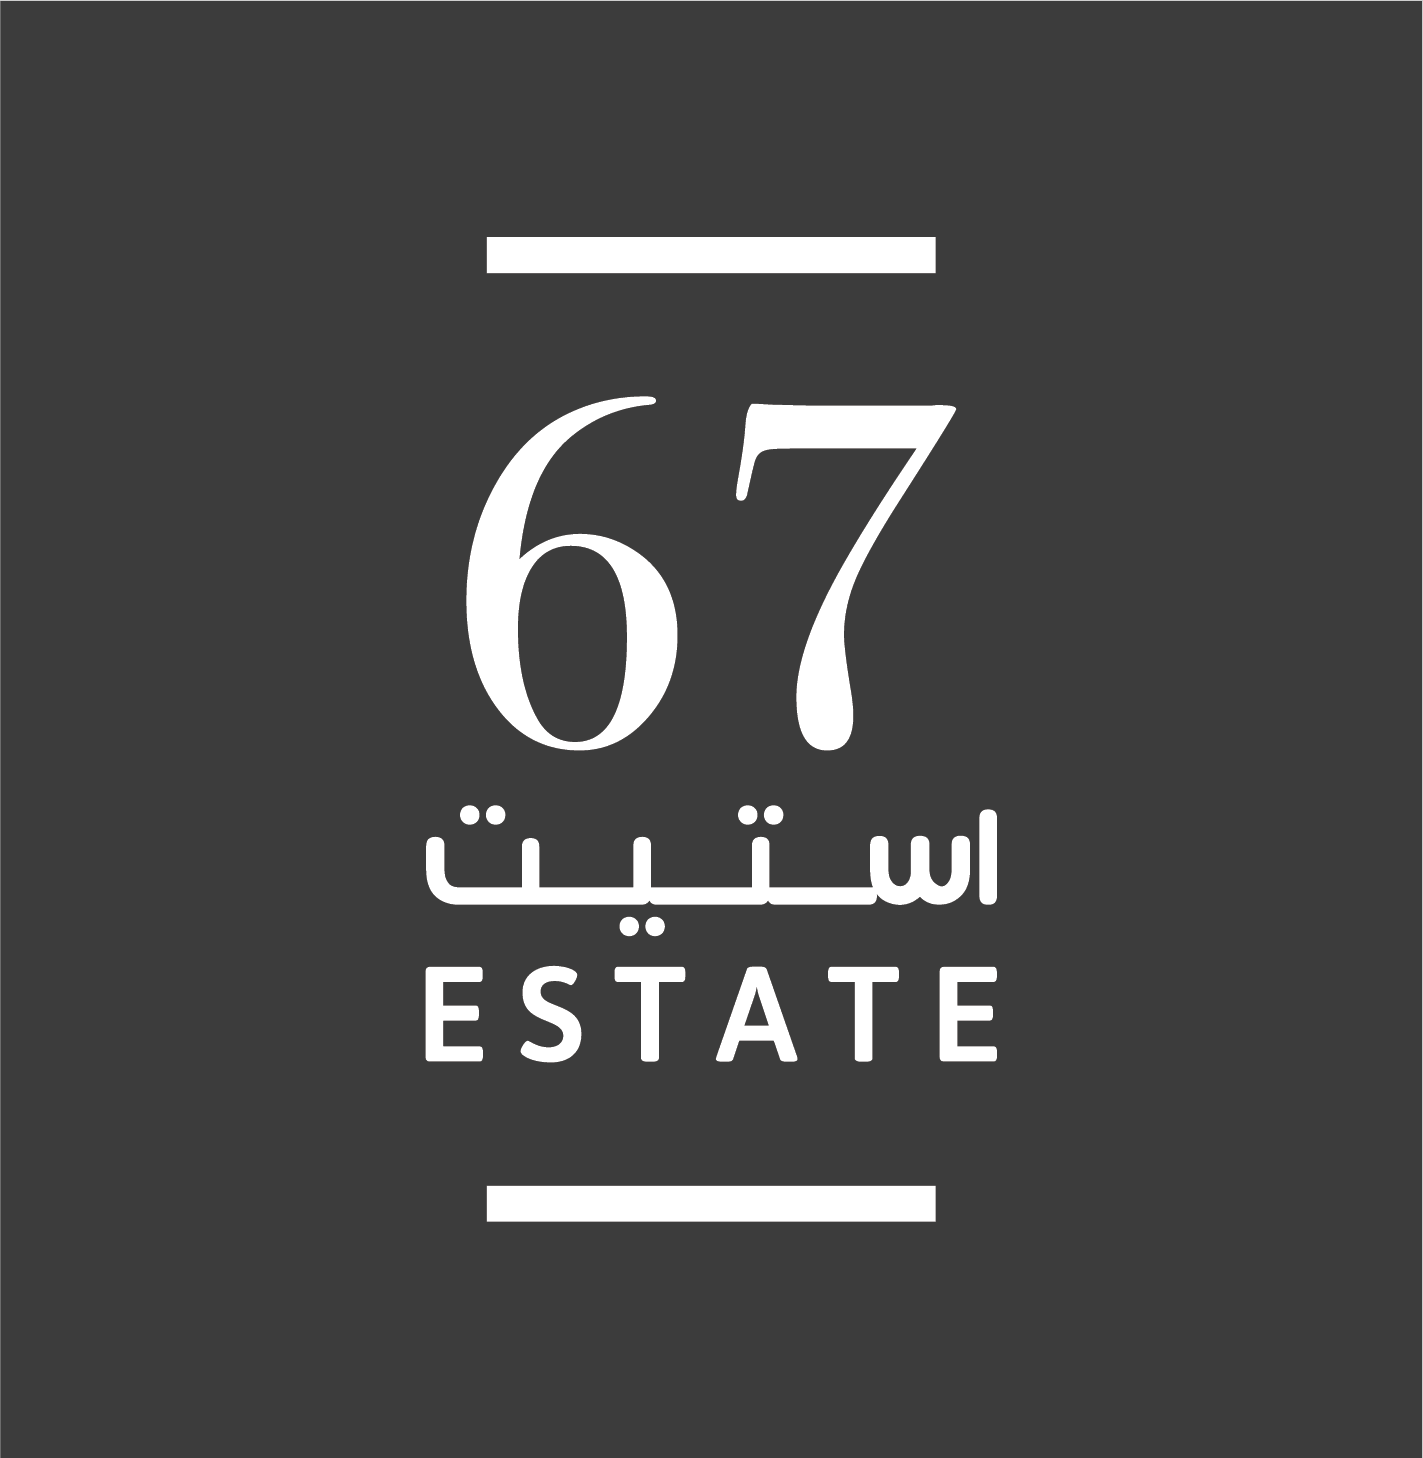 67 Estate Logo